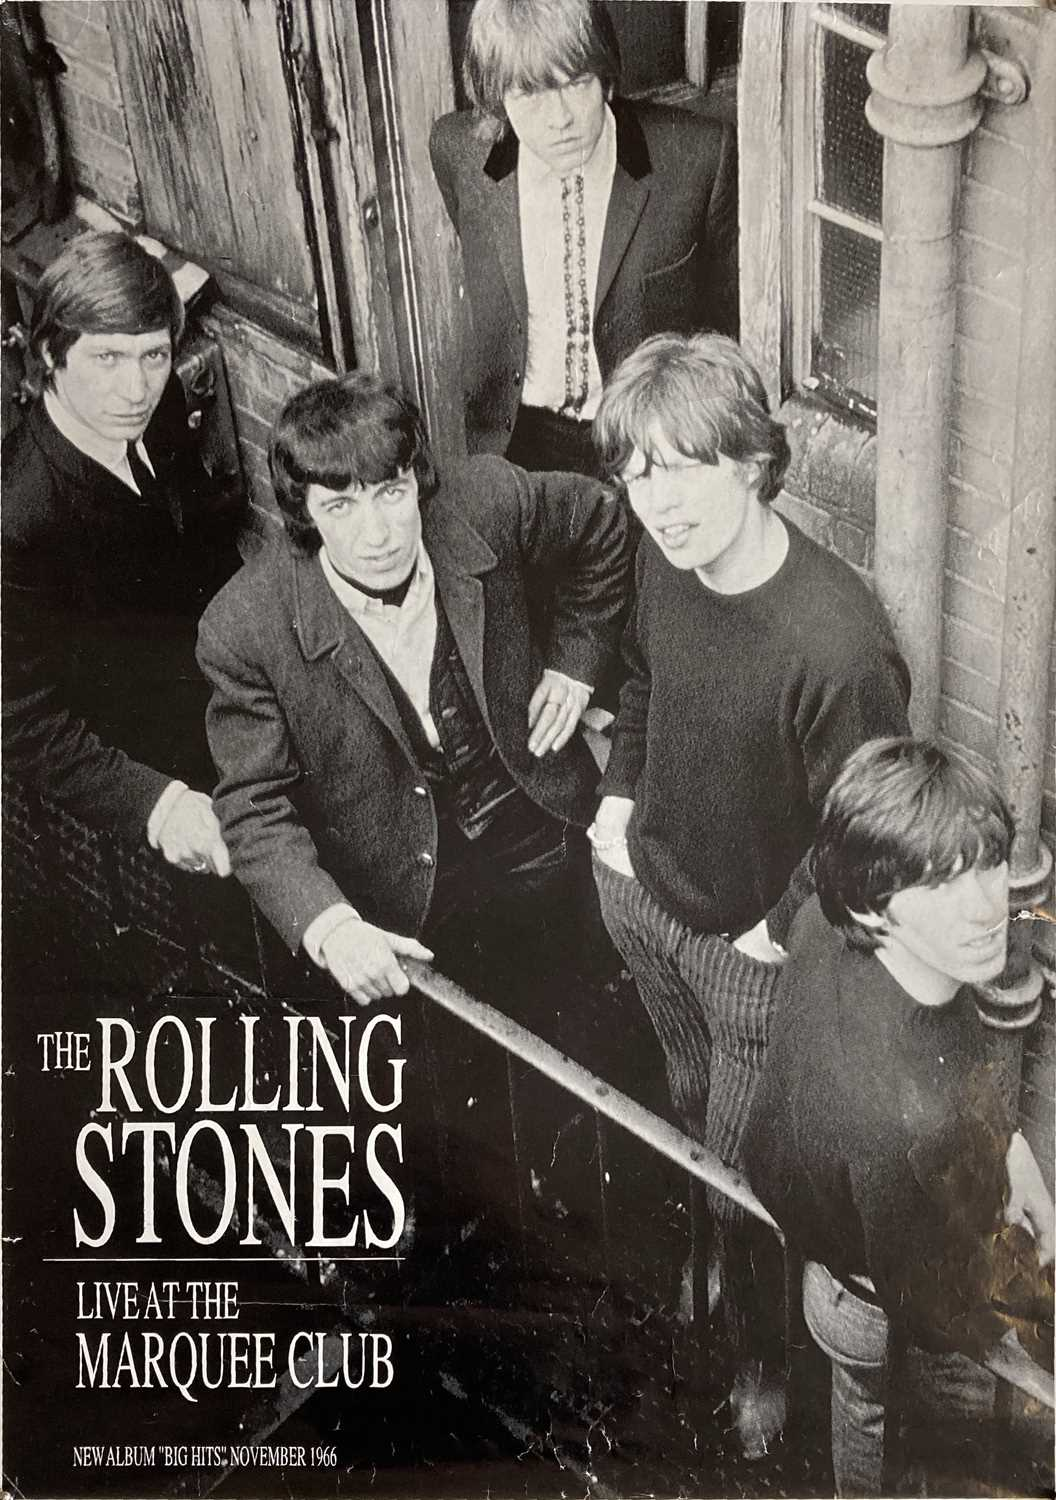 BEATLES / ROLLING STONES POSTERS. - Image 6 of 8